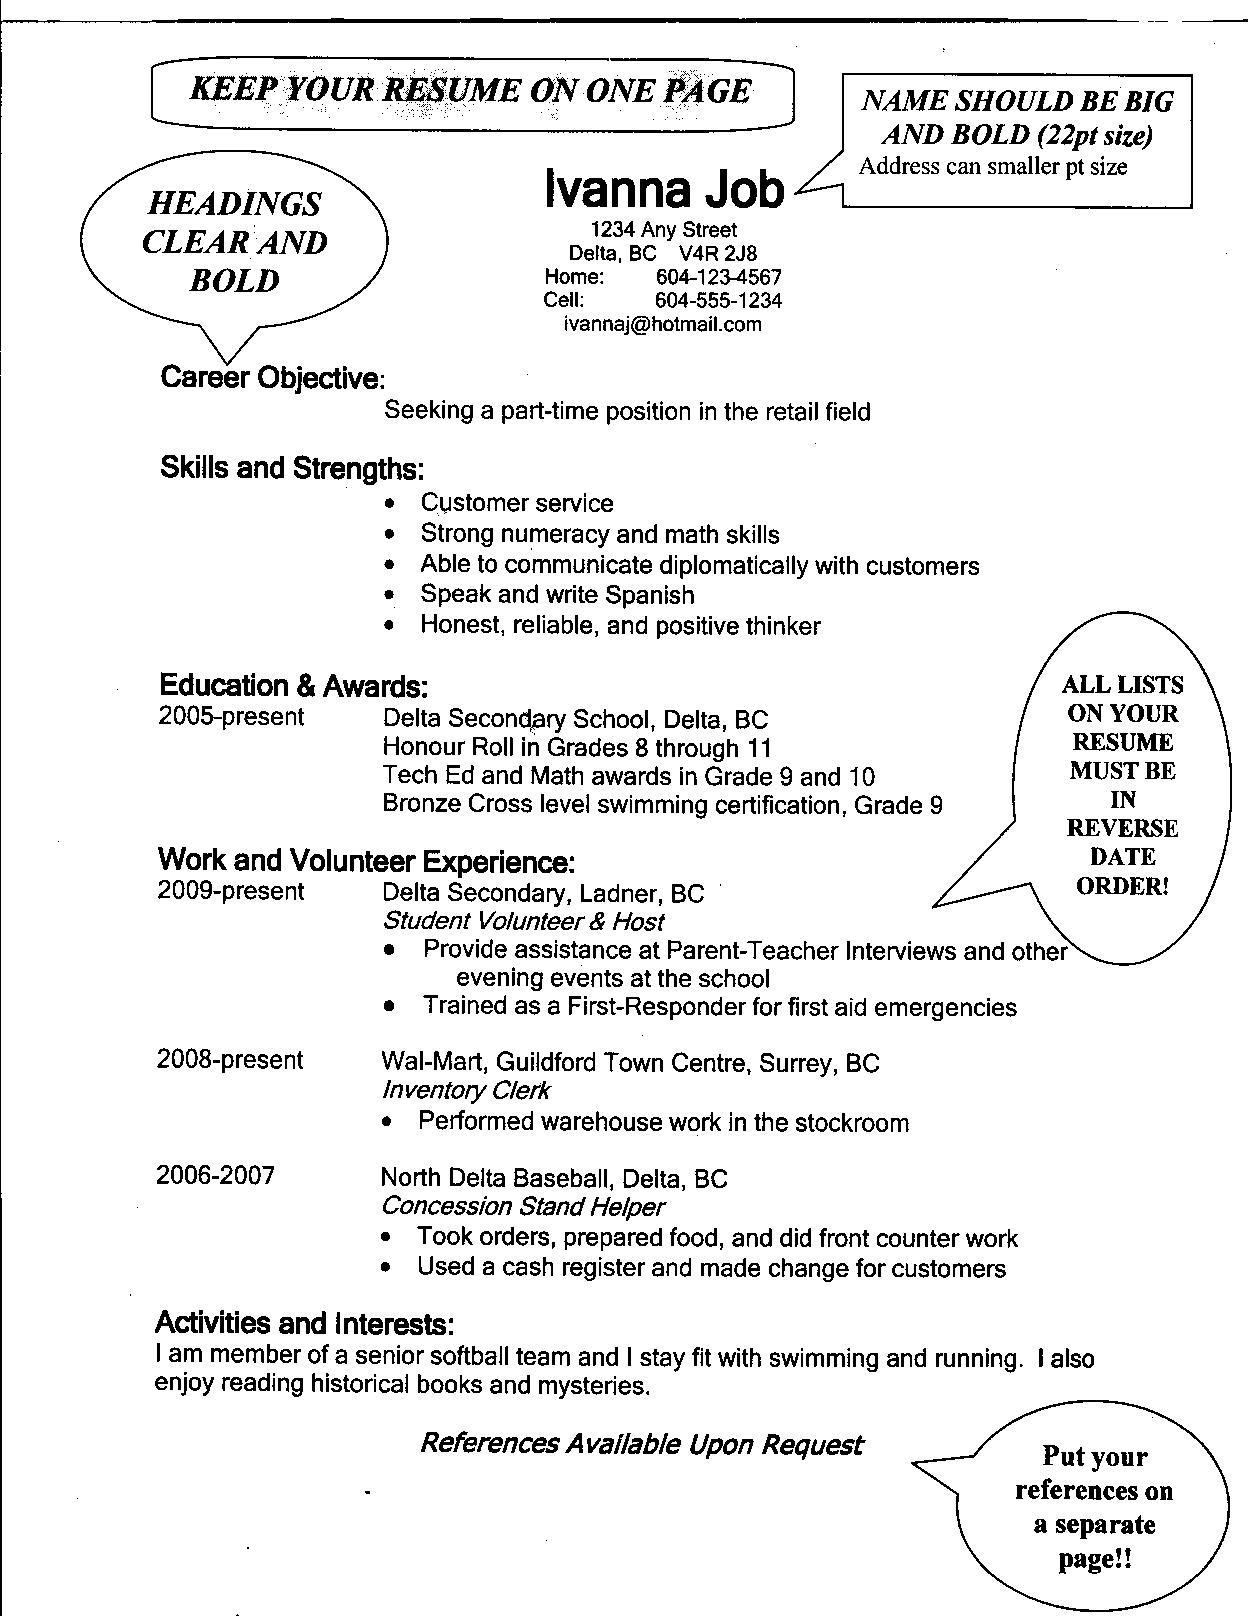 sample resume for high school students applying for scholarships - section 4 where am i going section 5 how am i going